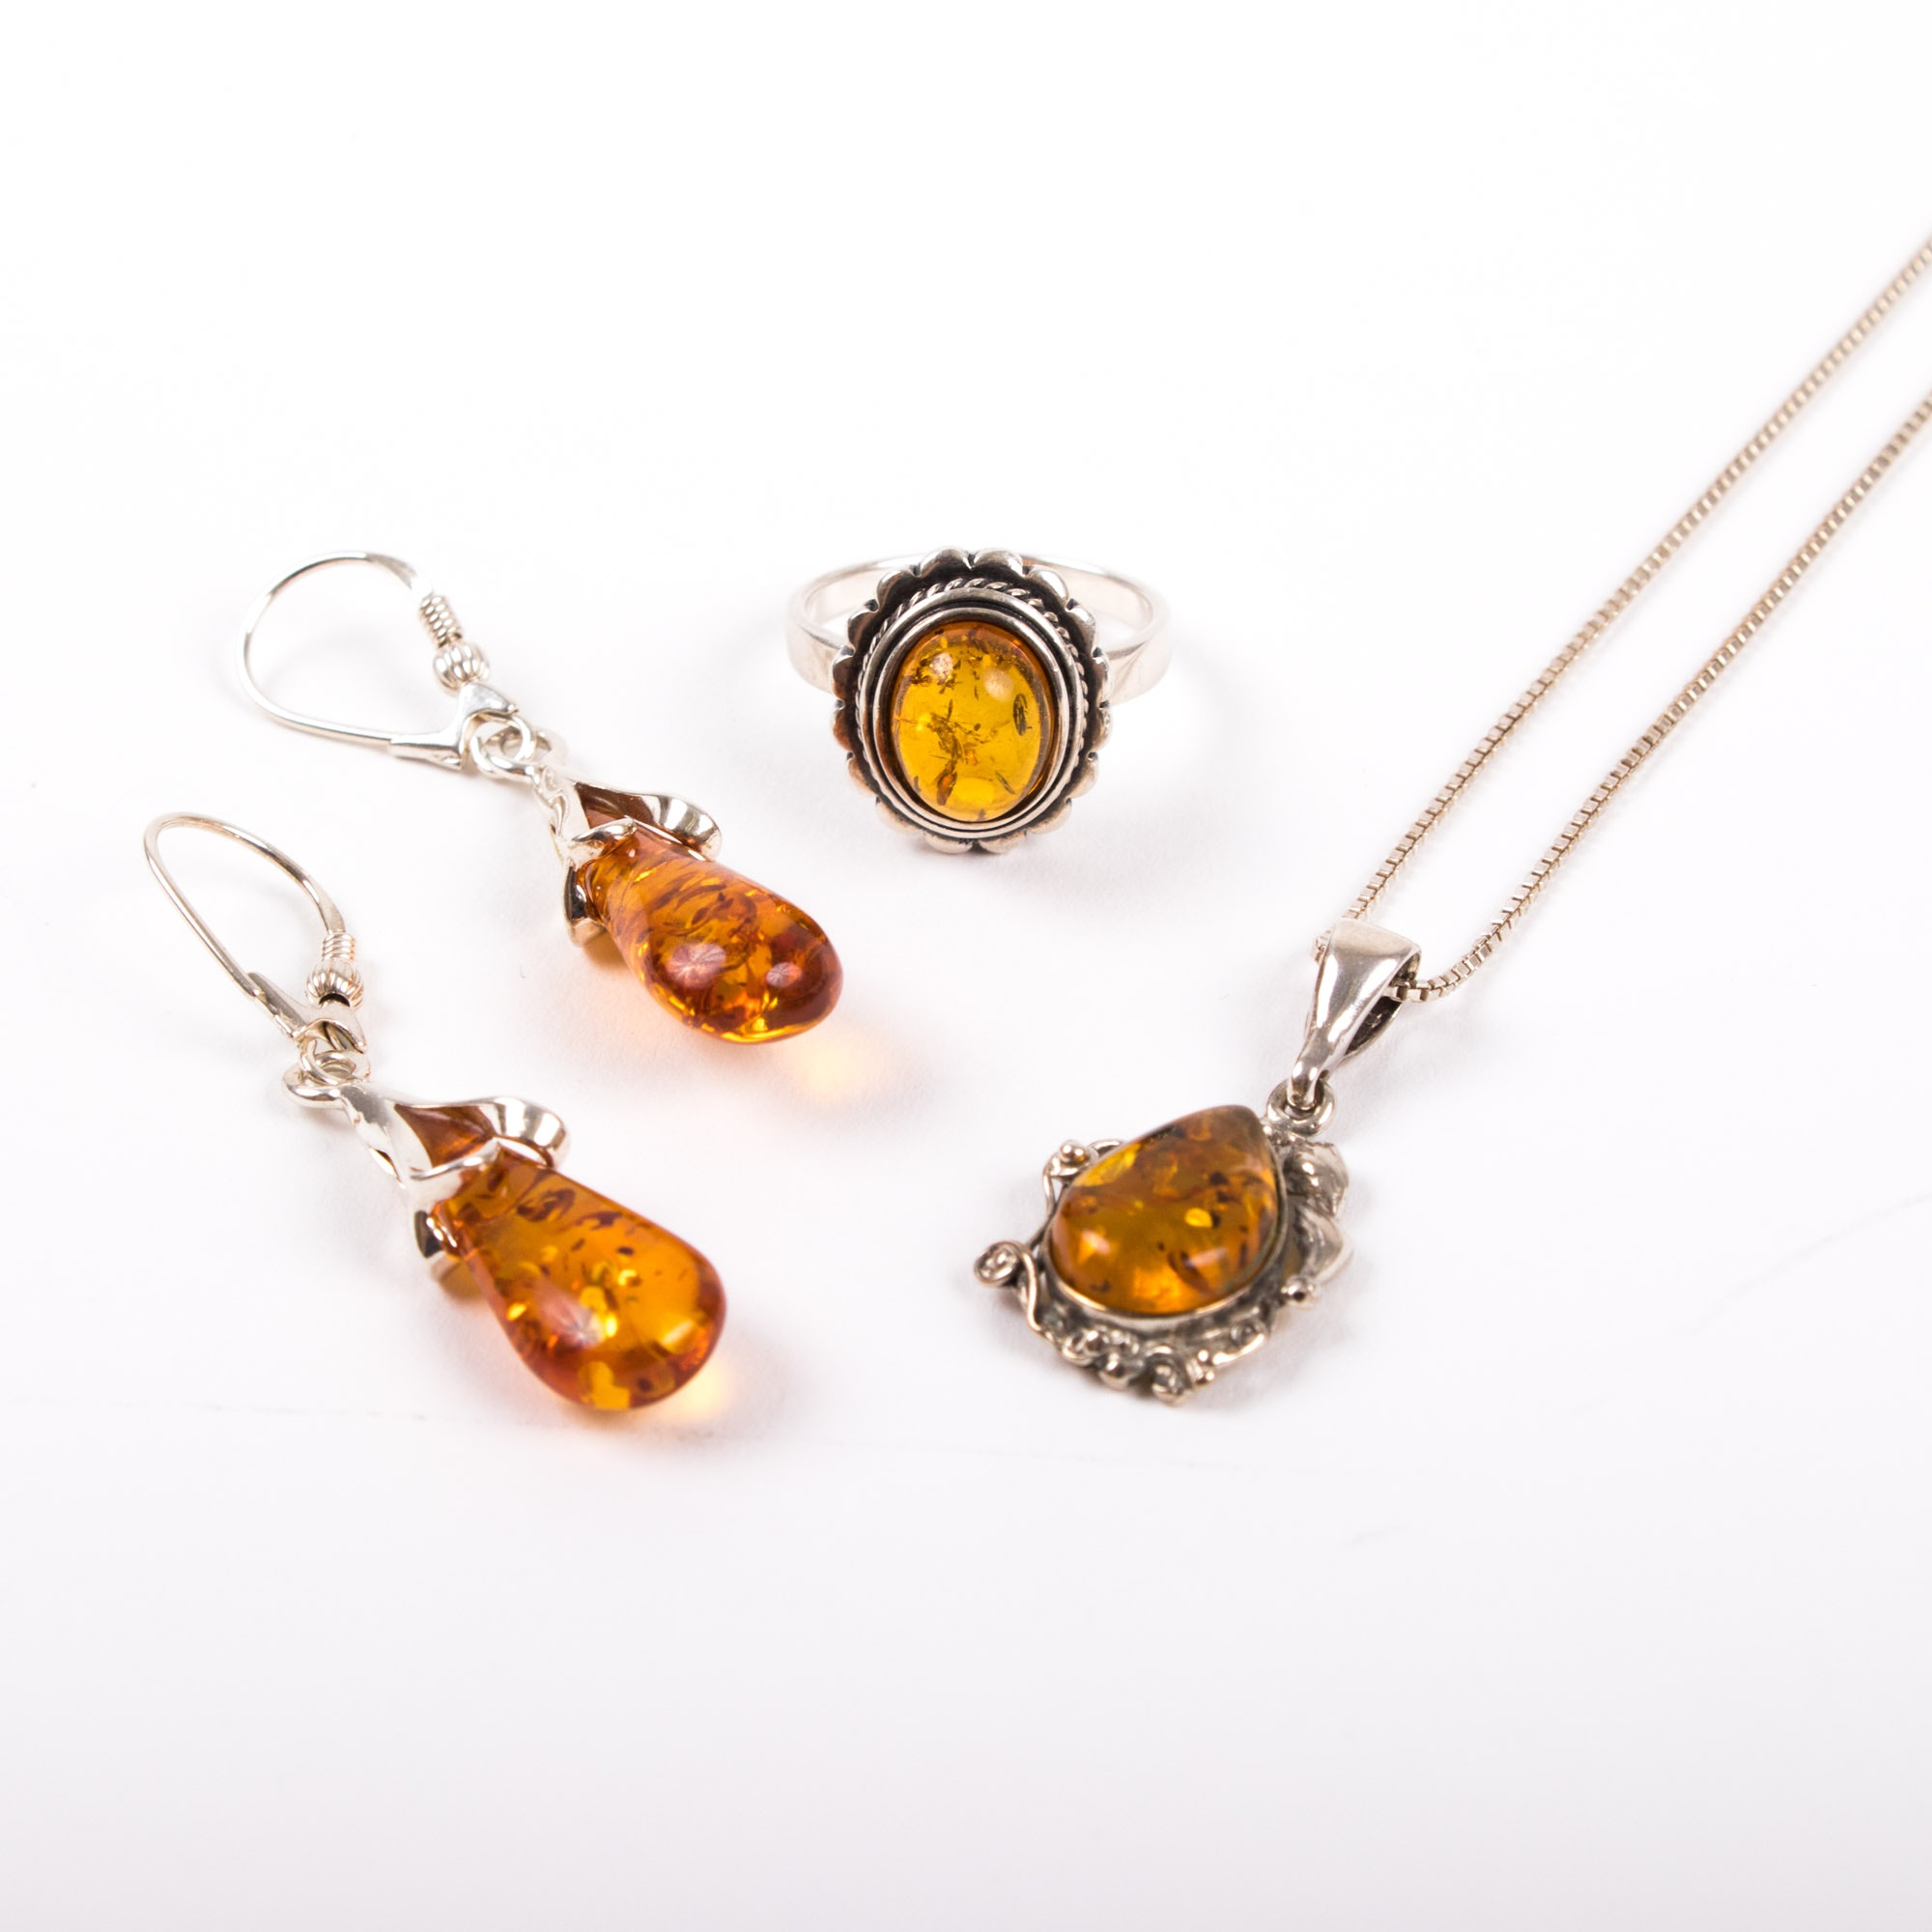 Sterling Silver and Amber Assorted Jewelry